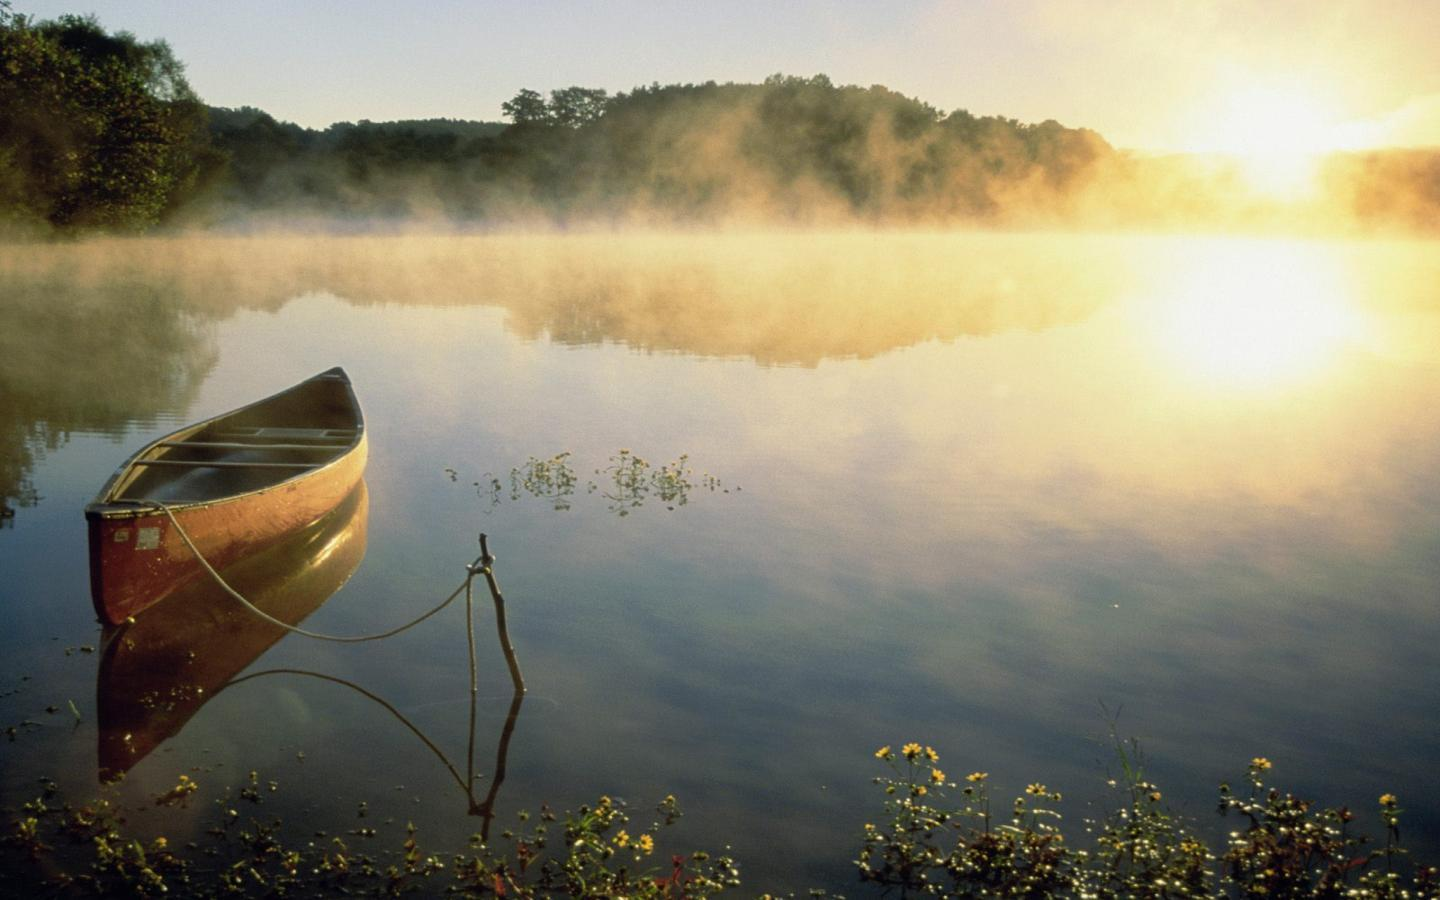 113001_boat-on-river-sunrise-facebook-timeline-cover1440x90067111